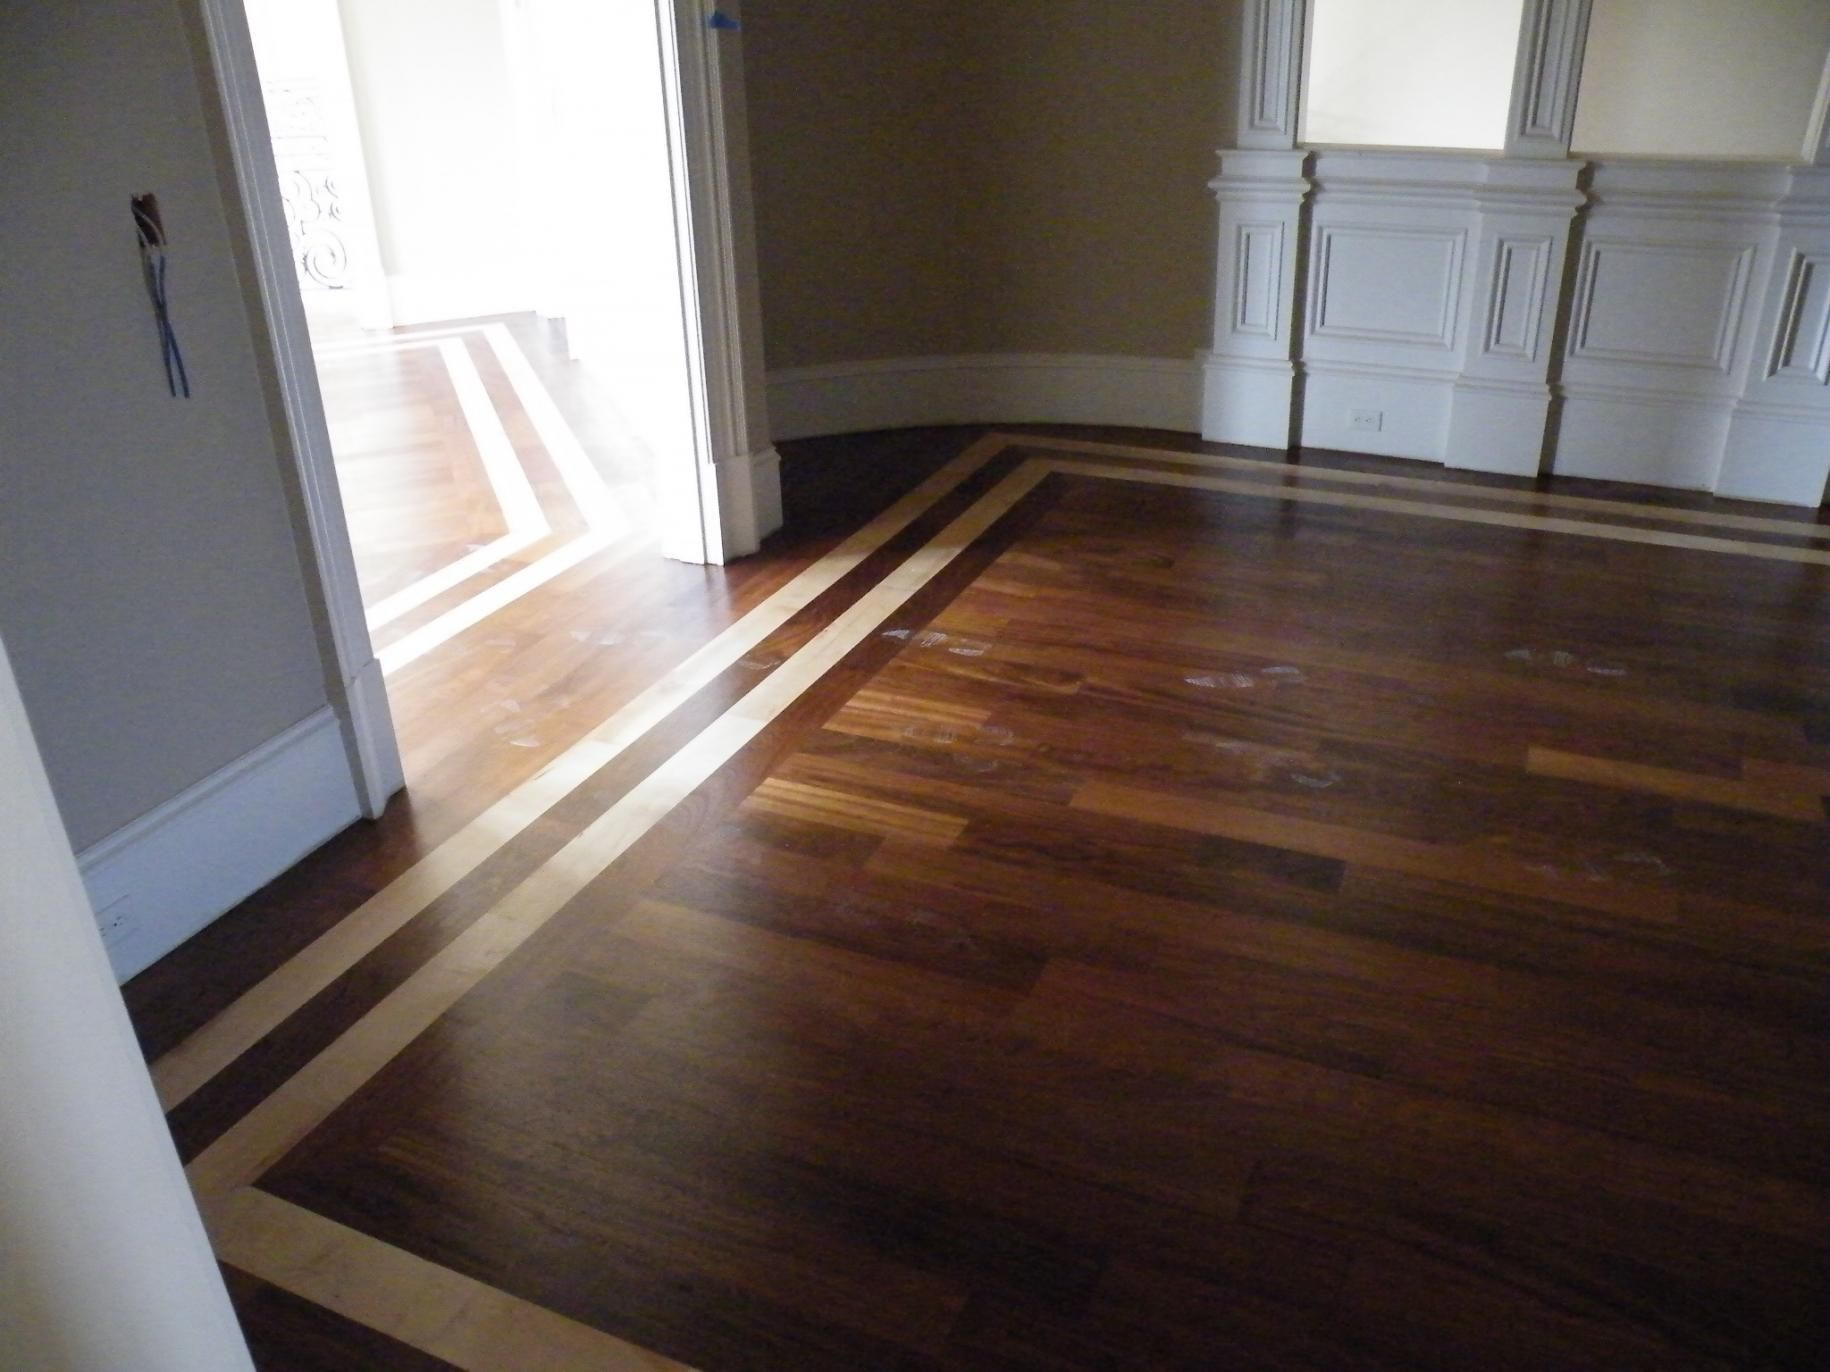 superior hardwood floor inlay designs #6: wood floor borders | Hardwood Floor Inlay - Flooring - Contractor Talk